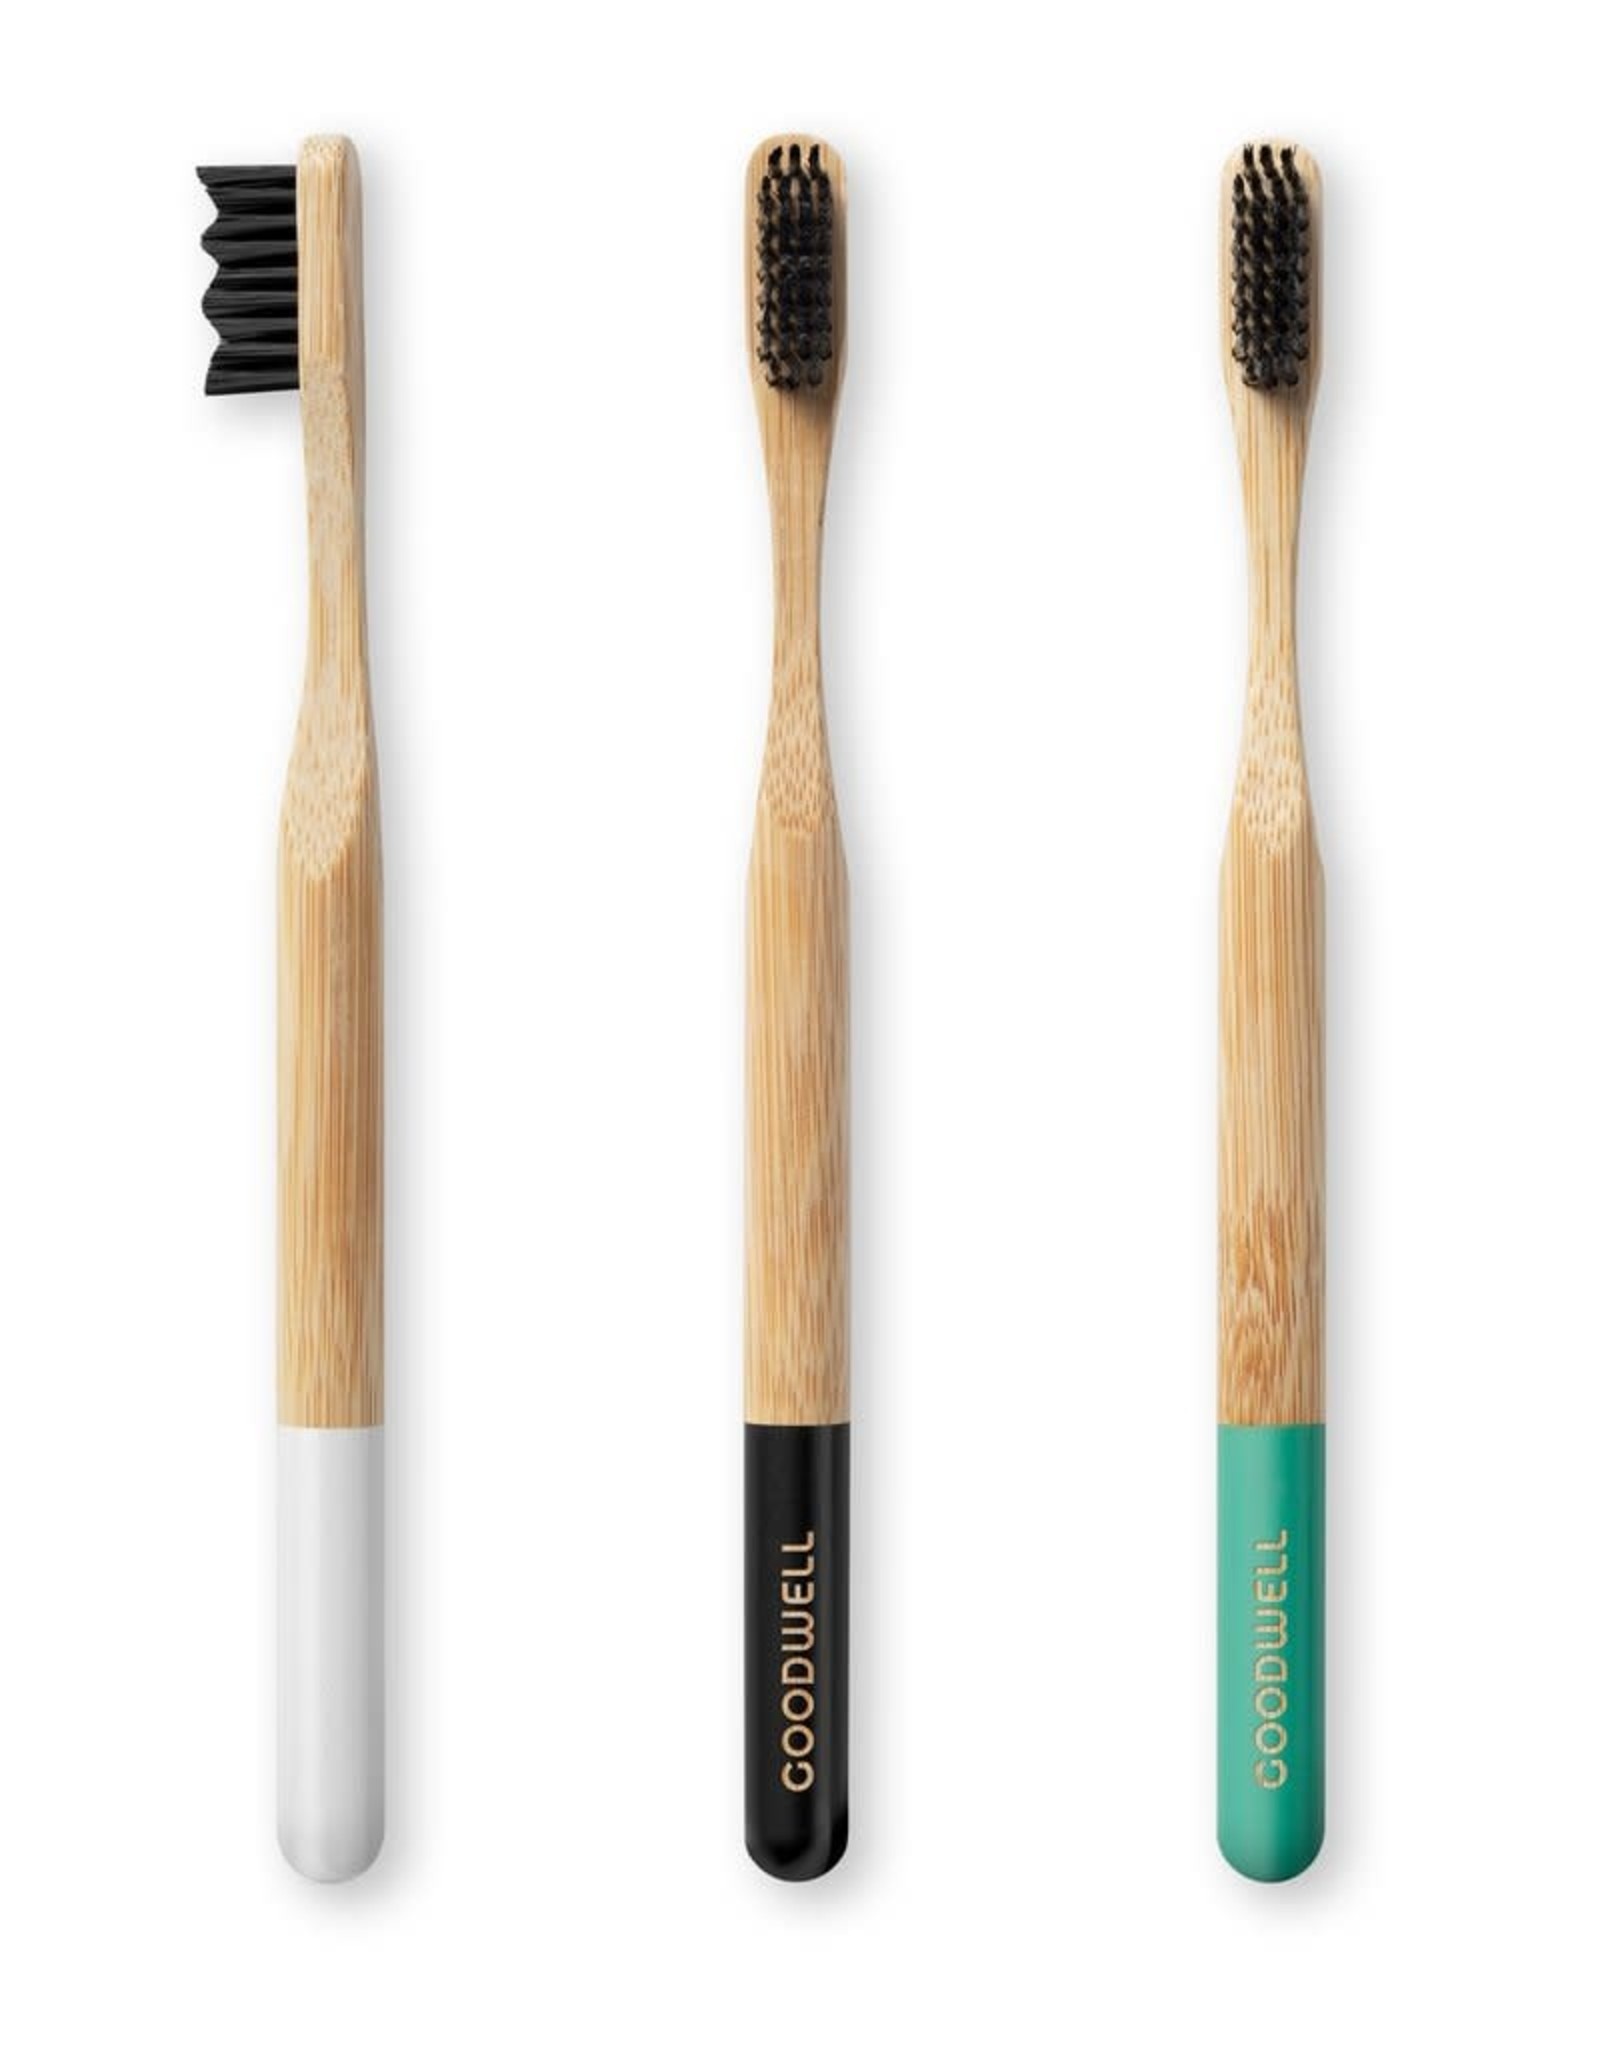 Goodwell Bamboo Toothbrush